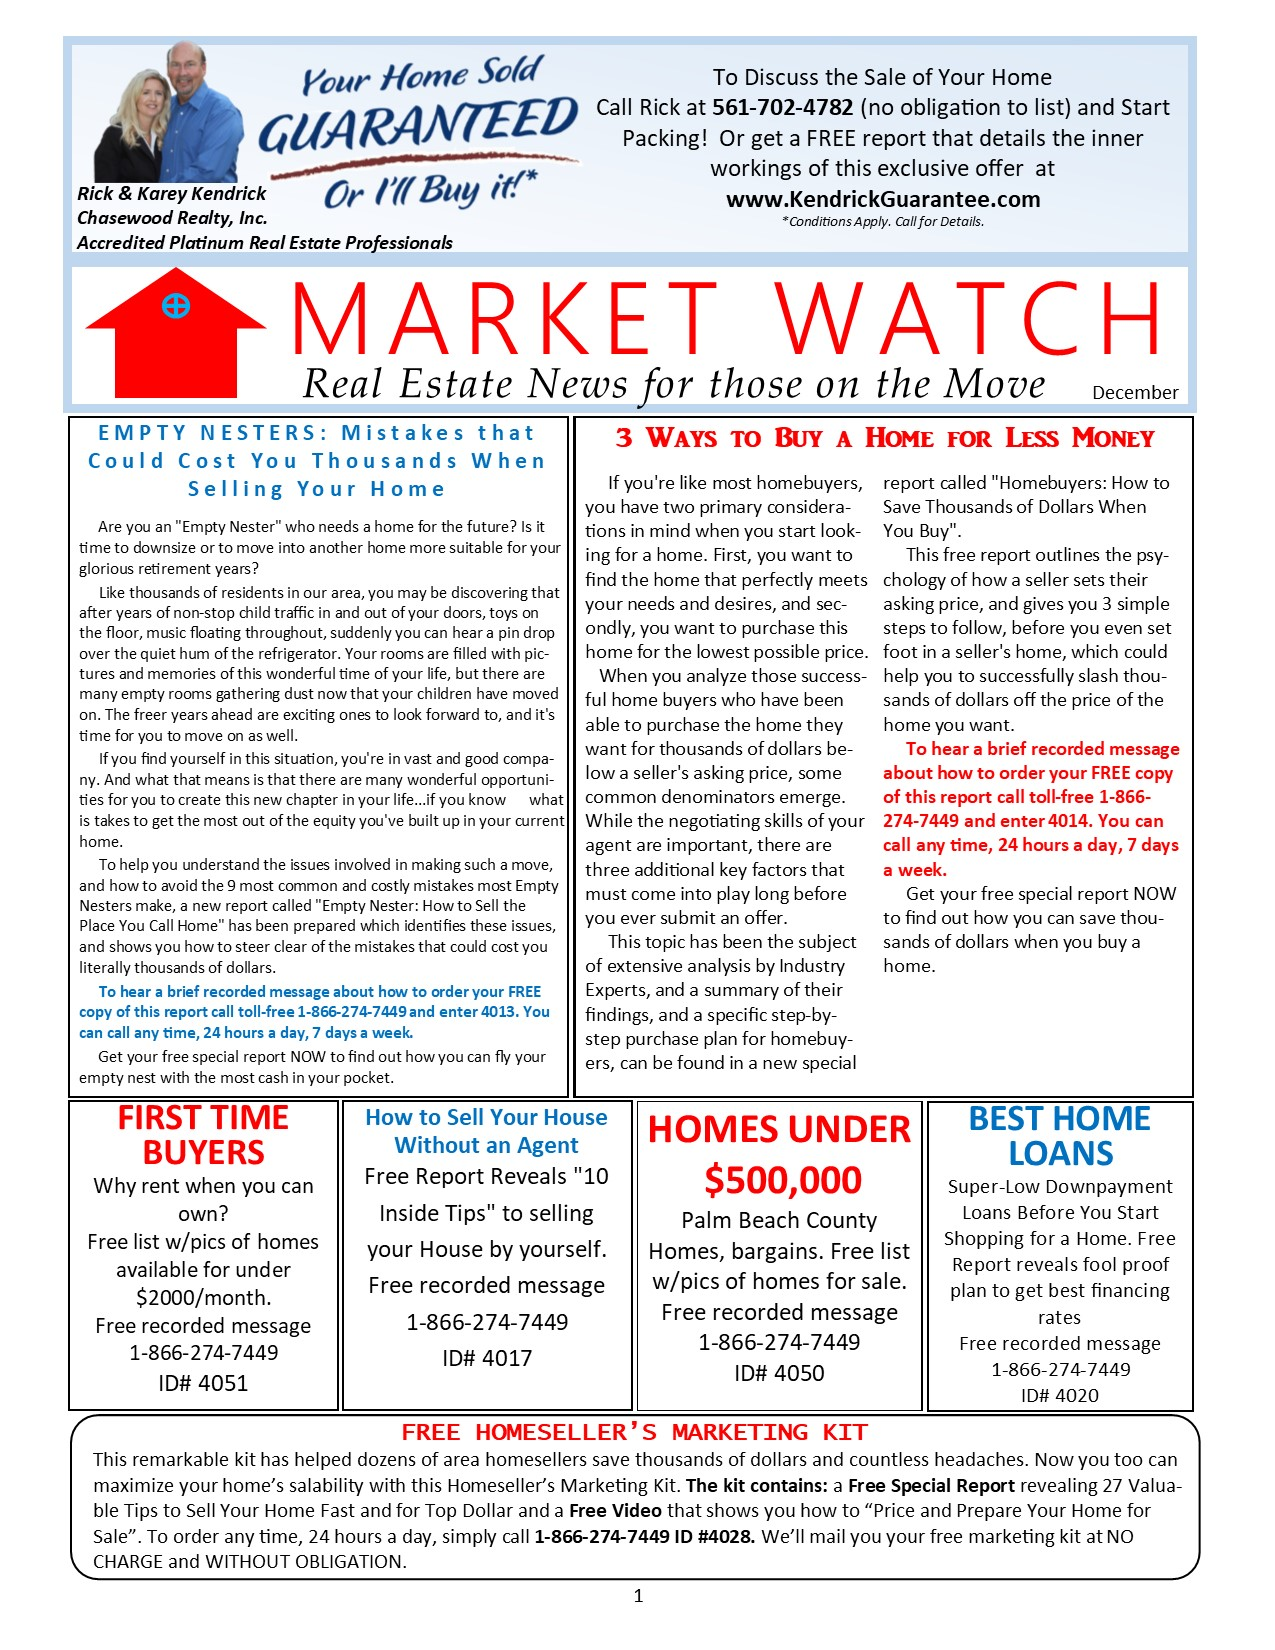 Market Watch Newsletter December 2018